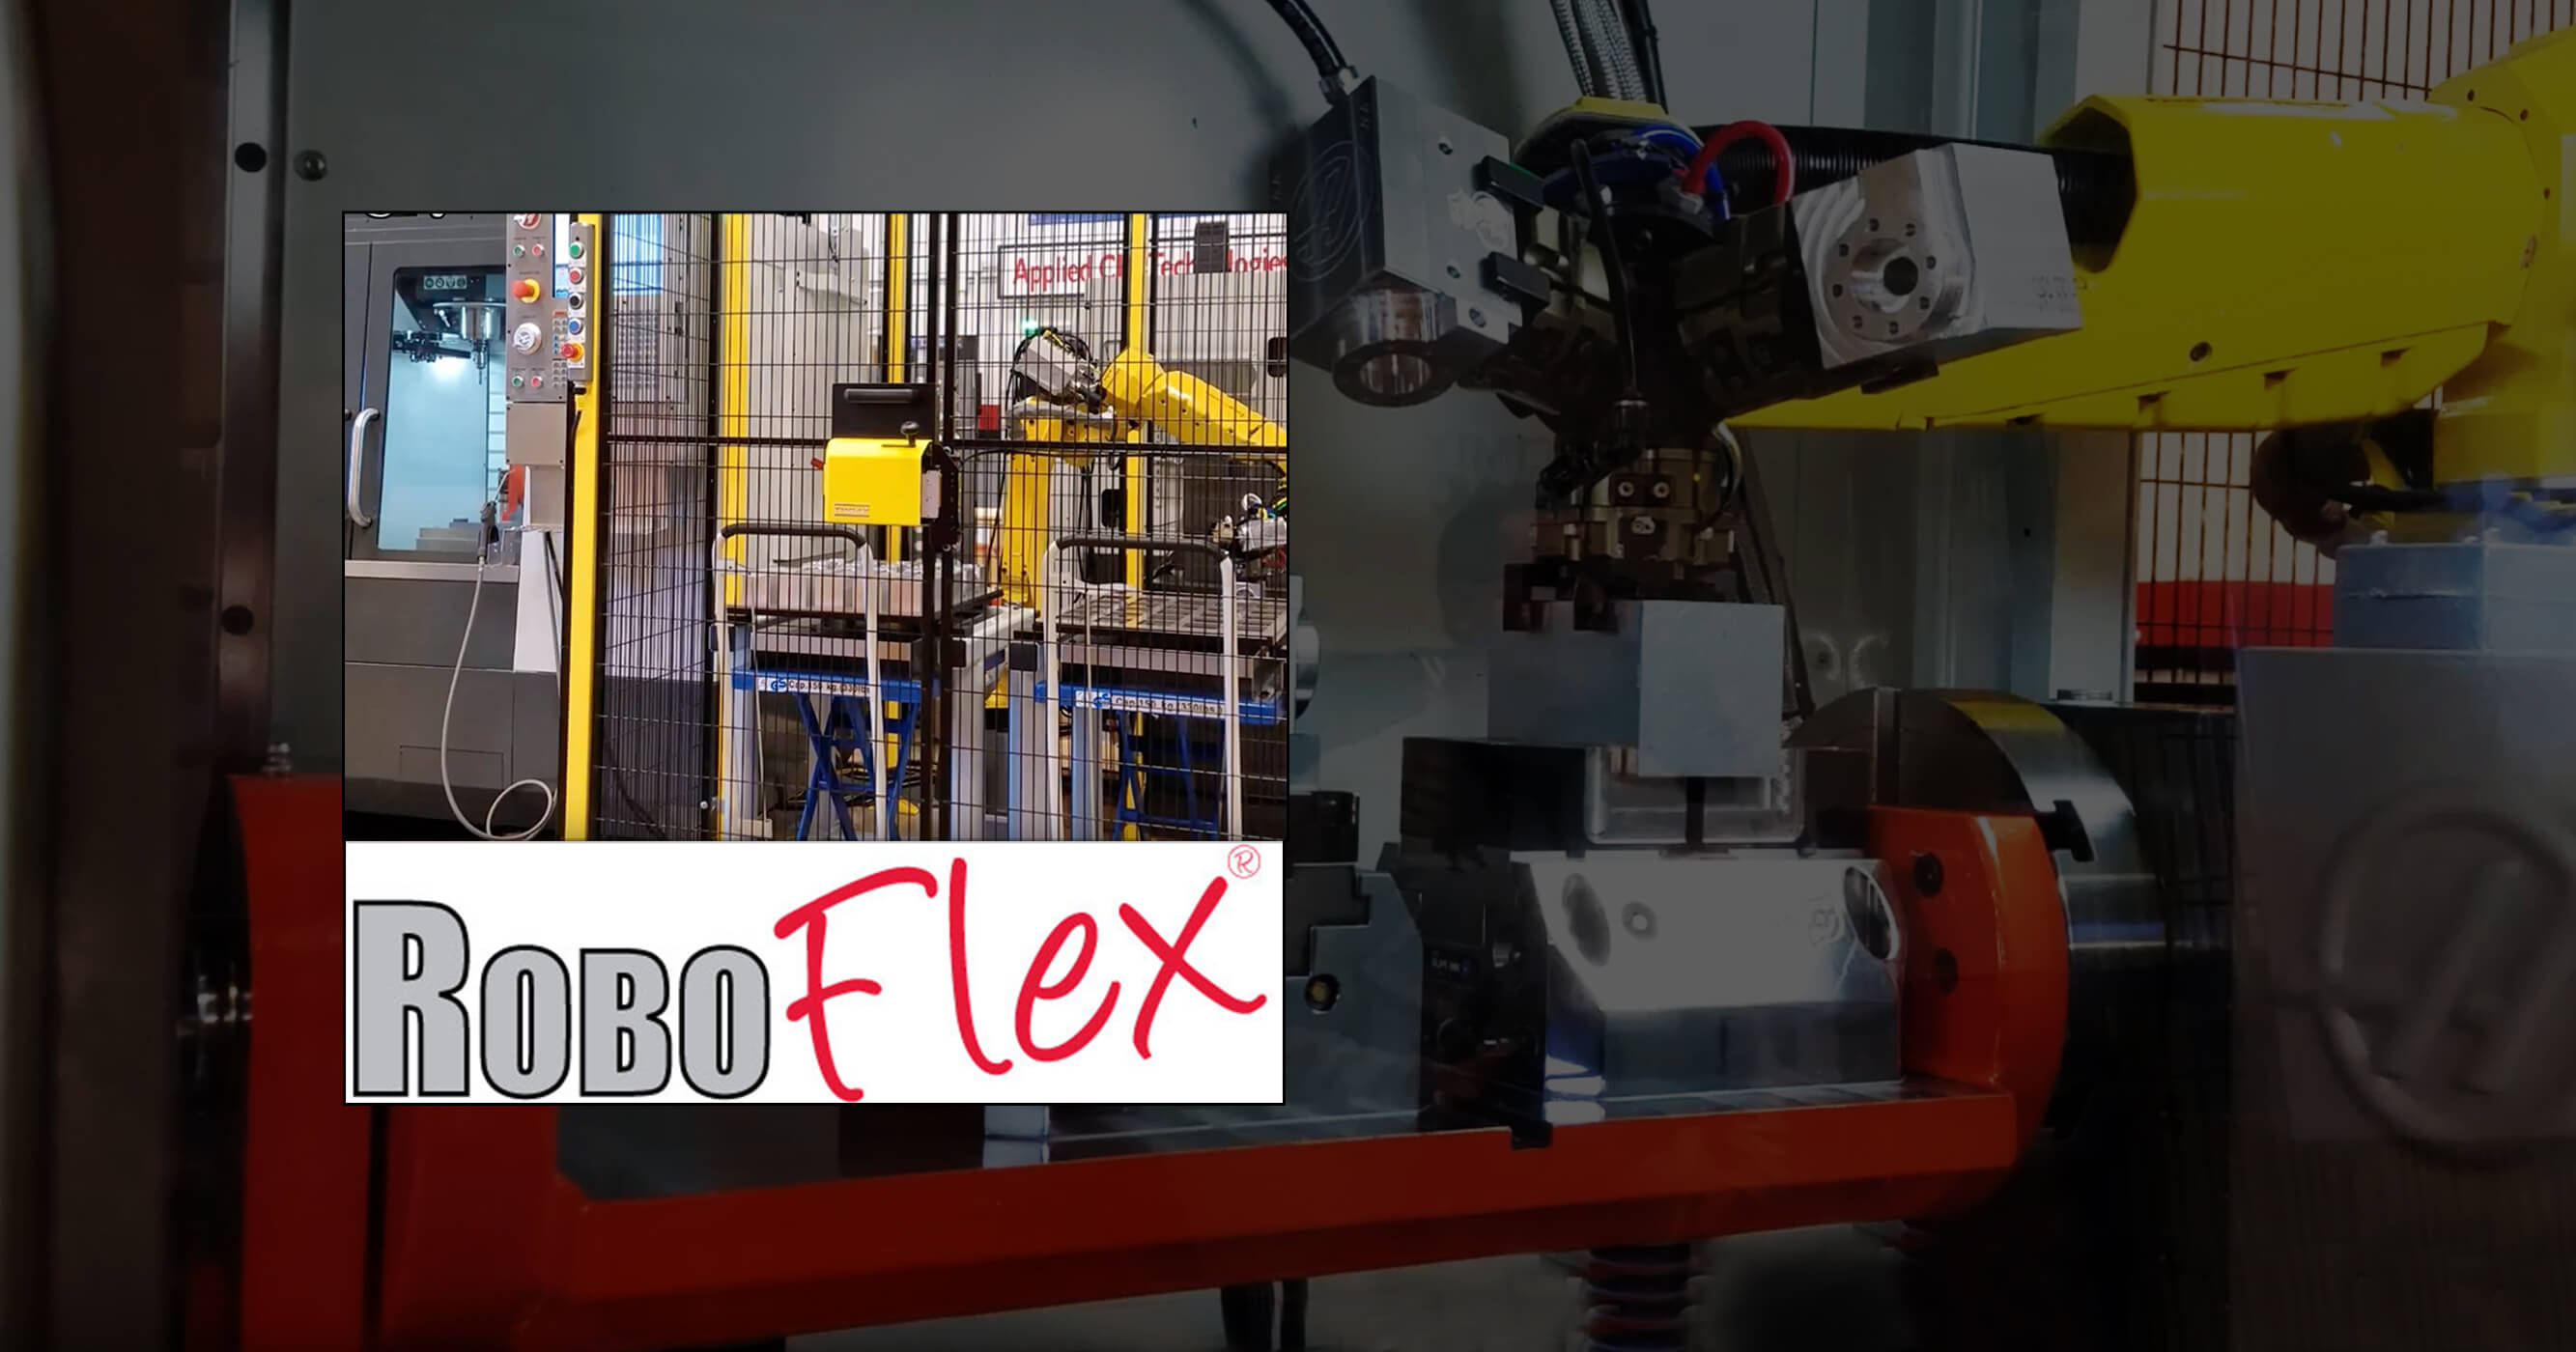 View the Roboflex page